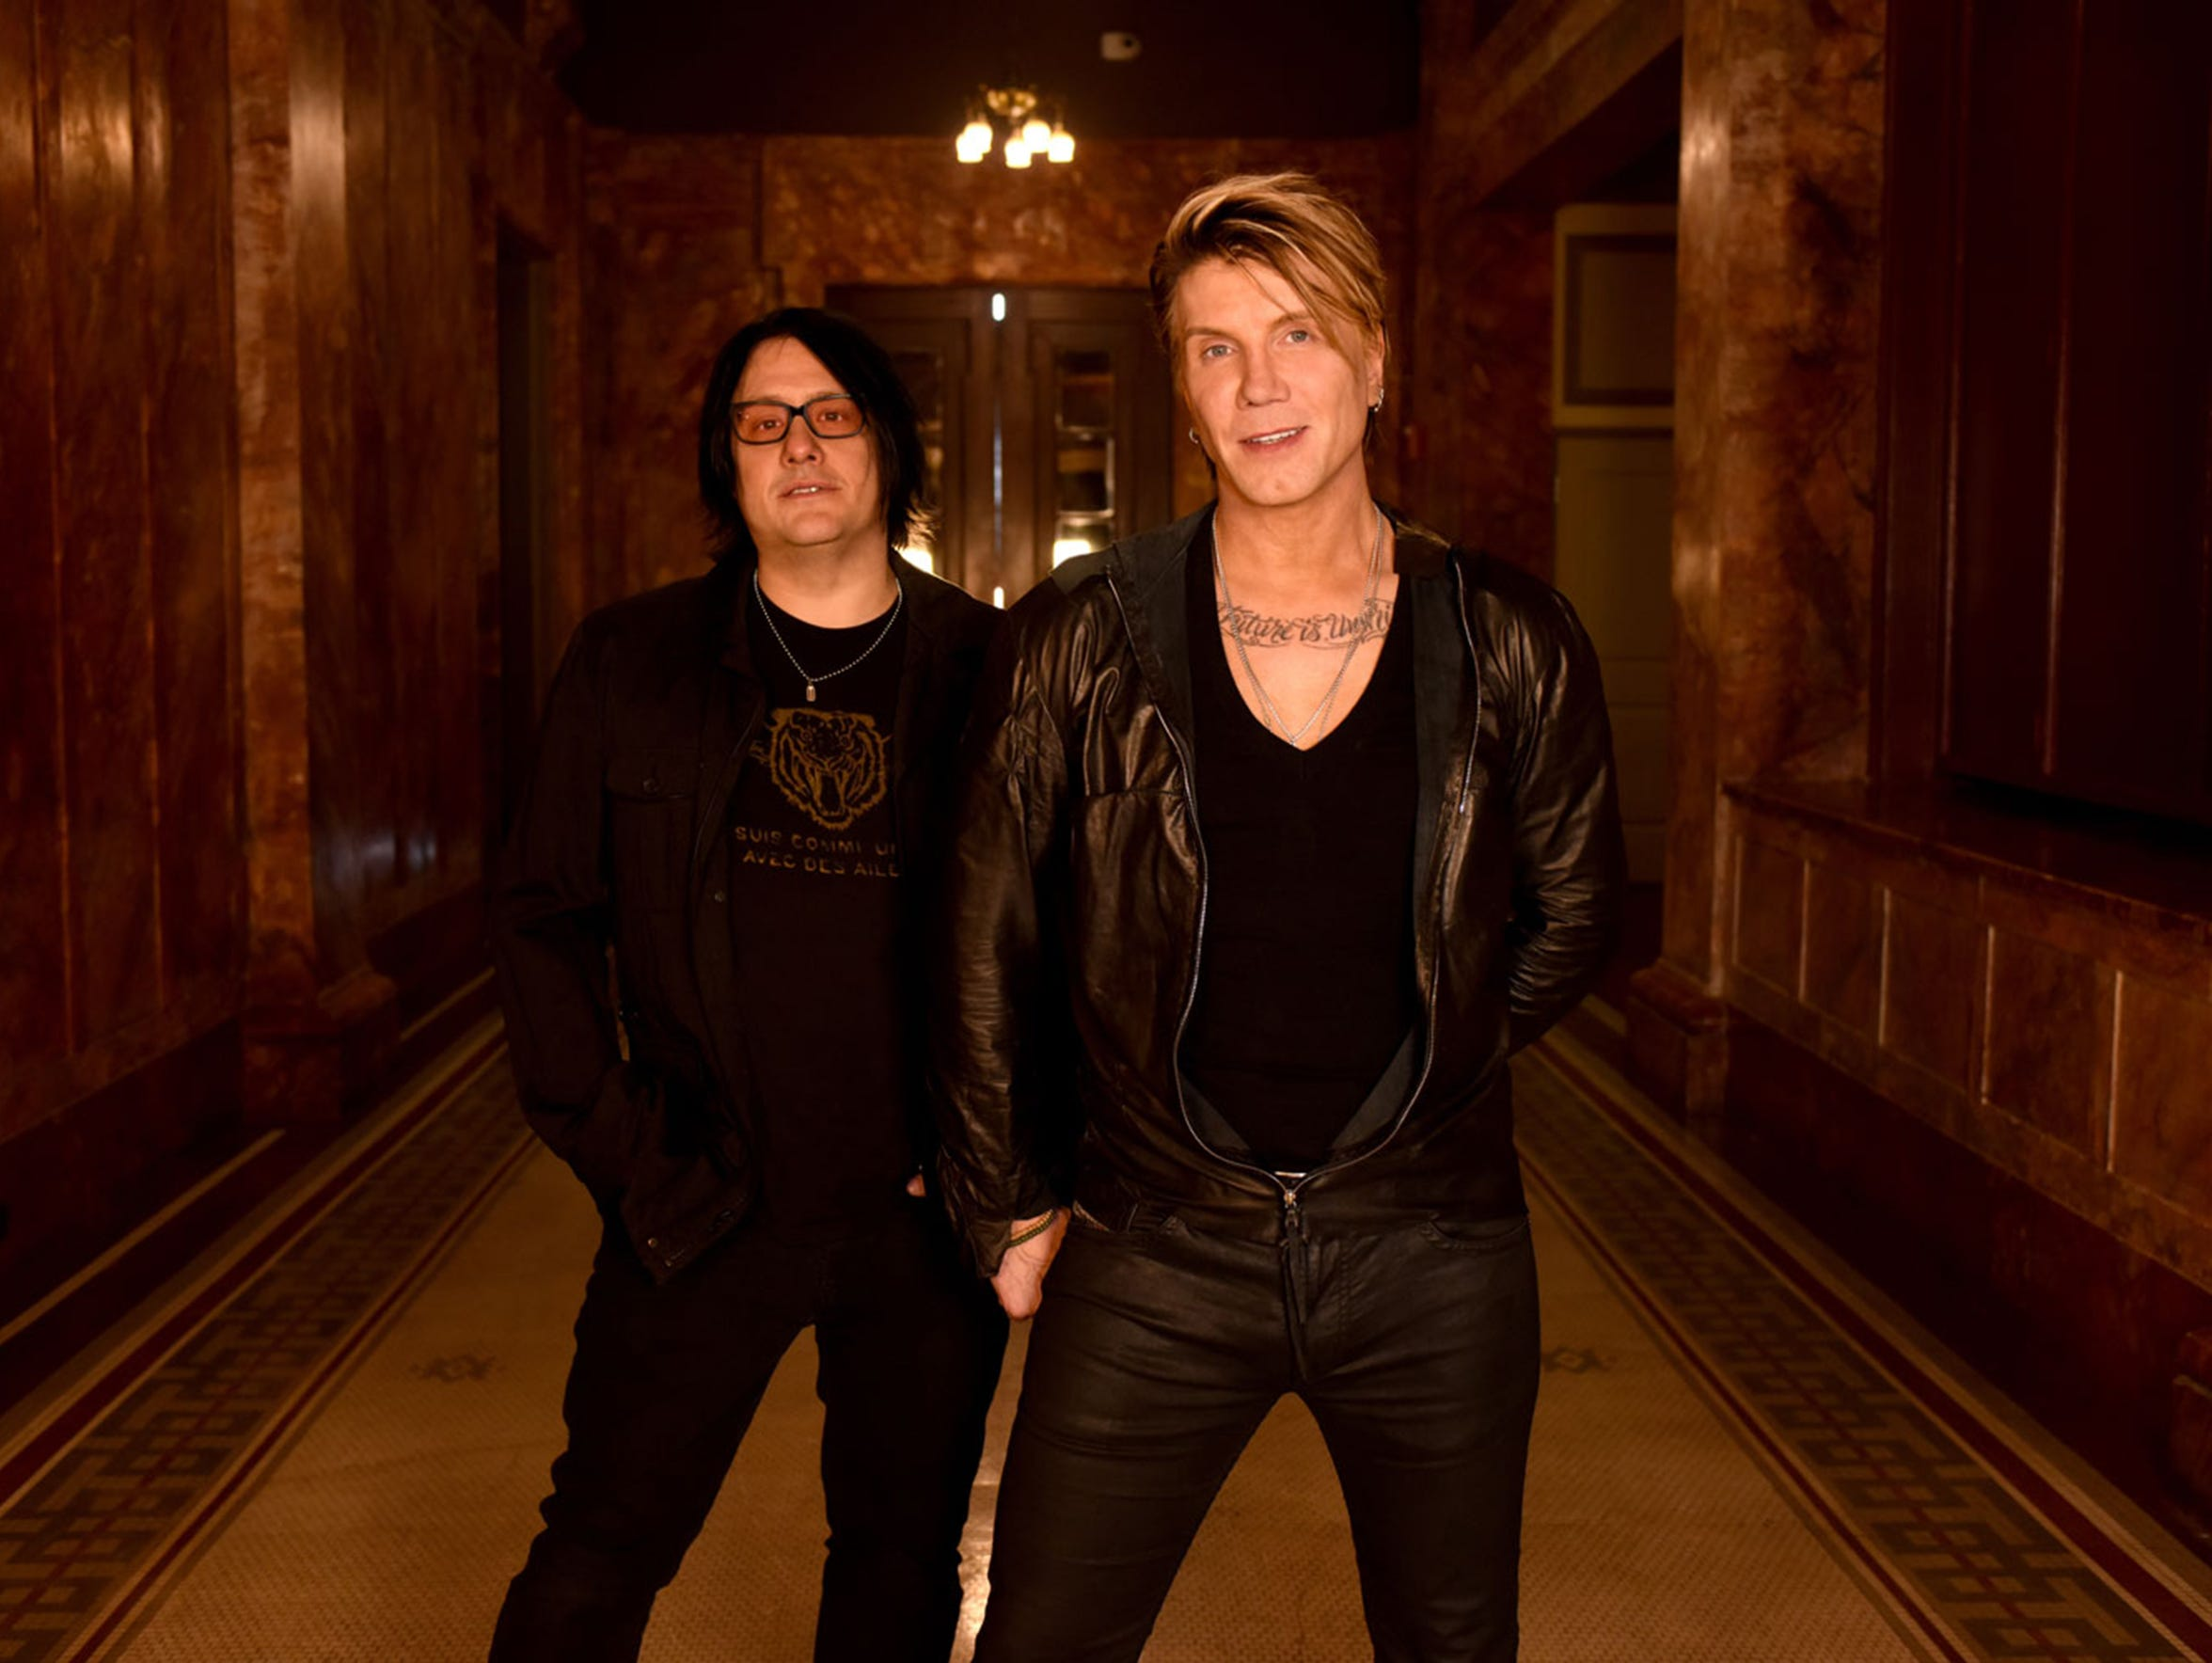 Goo Goo Dolls is doubling the opportunity for fans